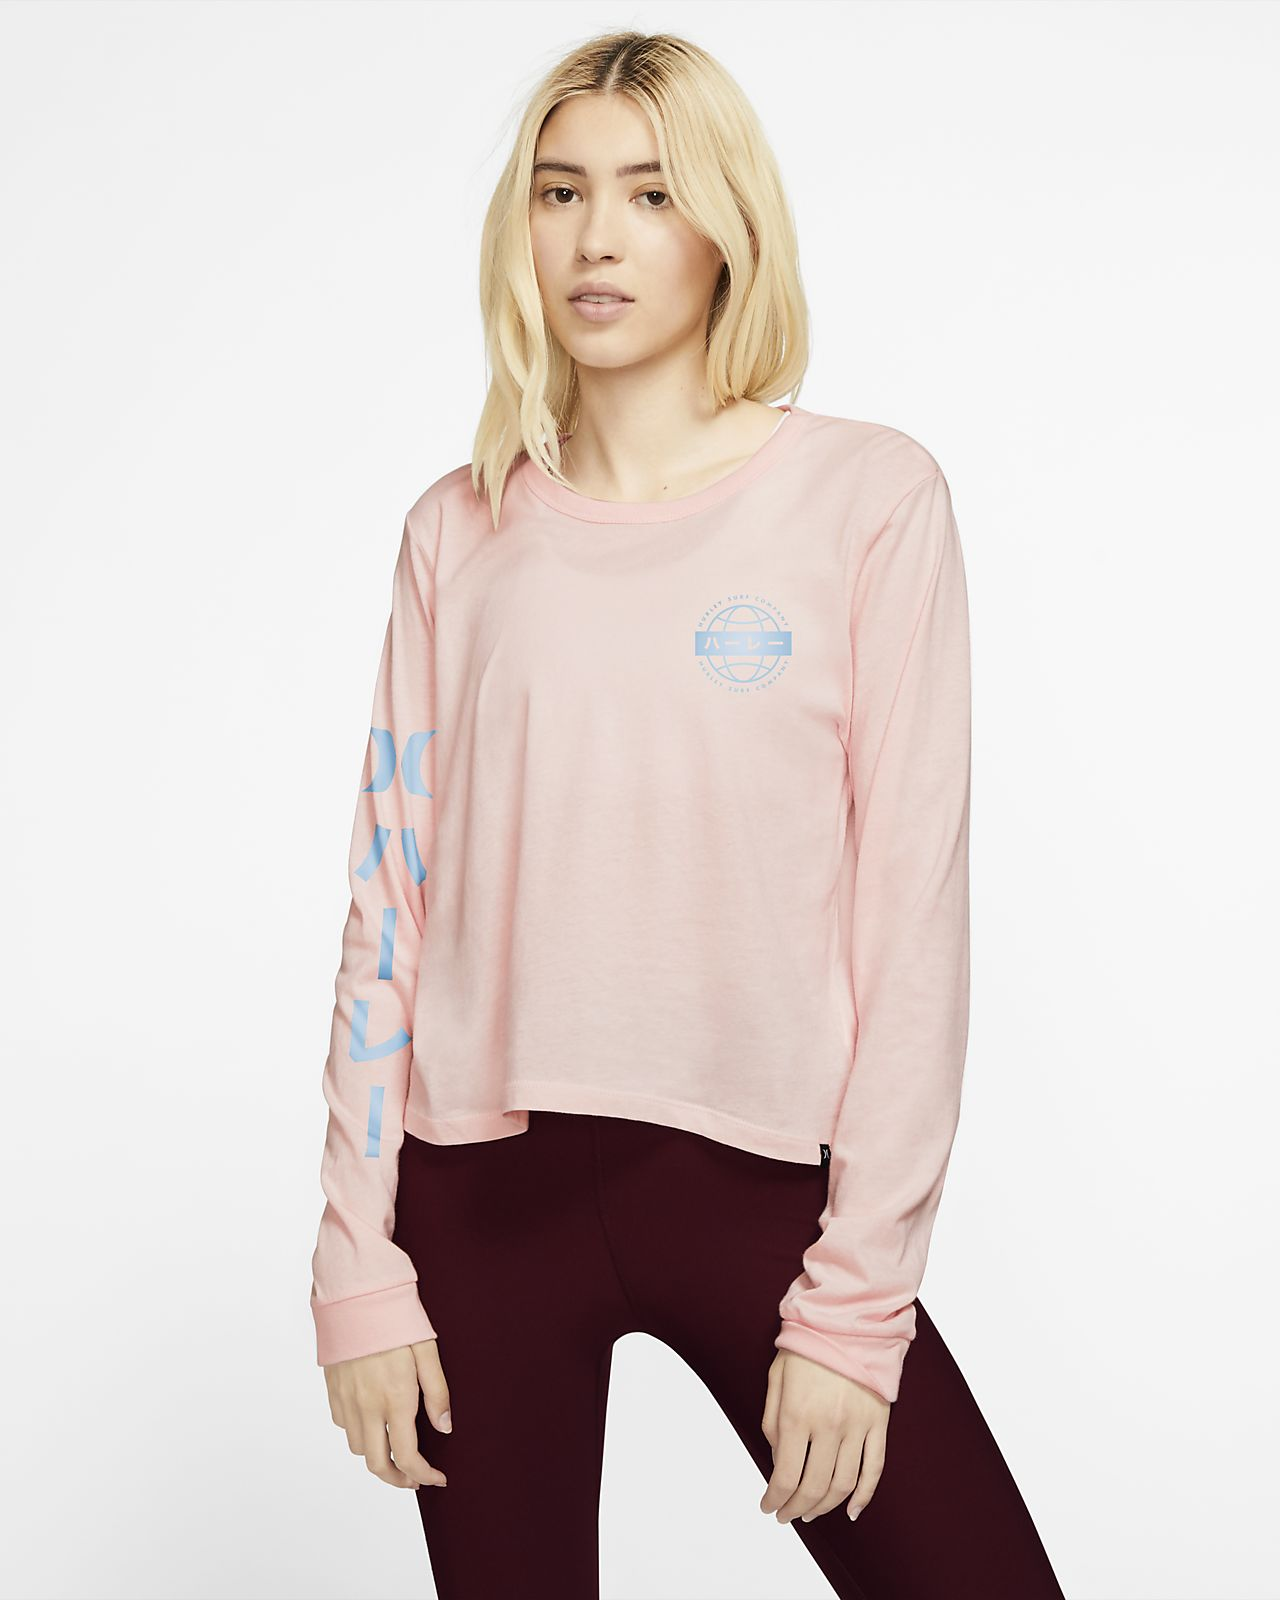 Hurley Global Perfect T-shirt met lange mouwen voor dames